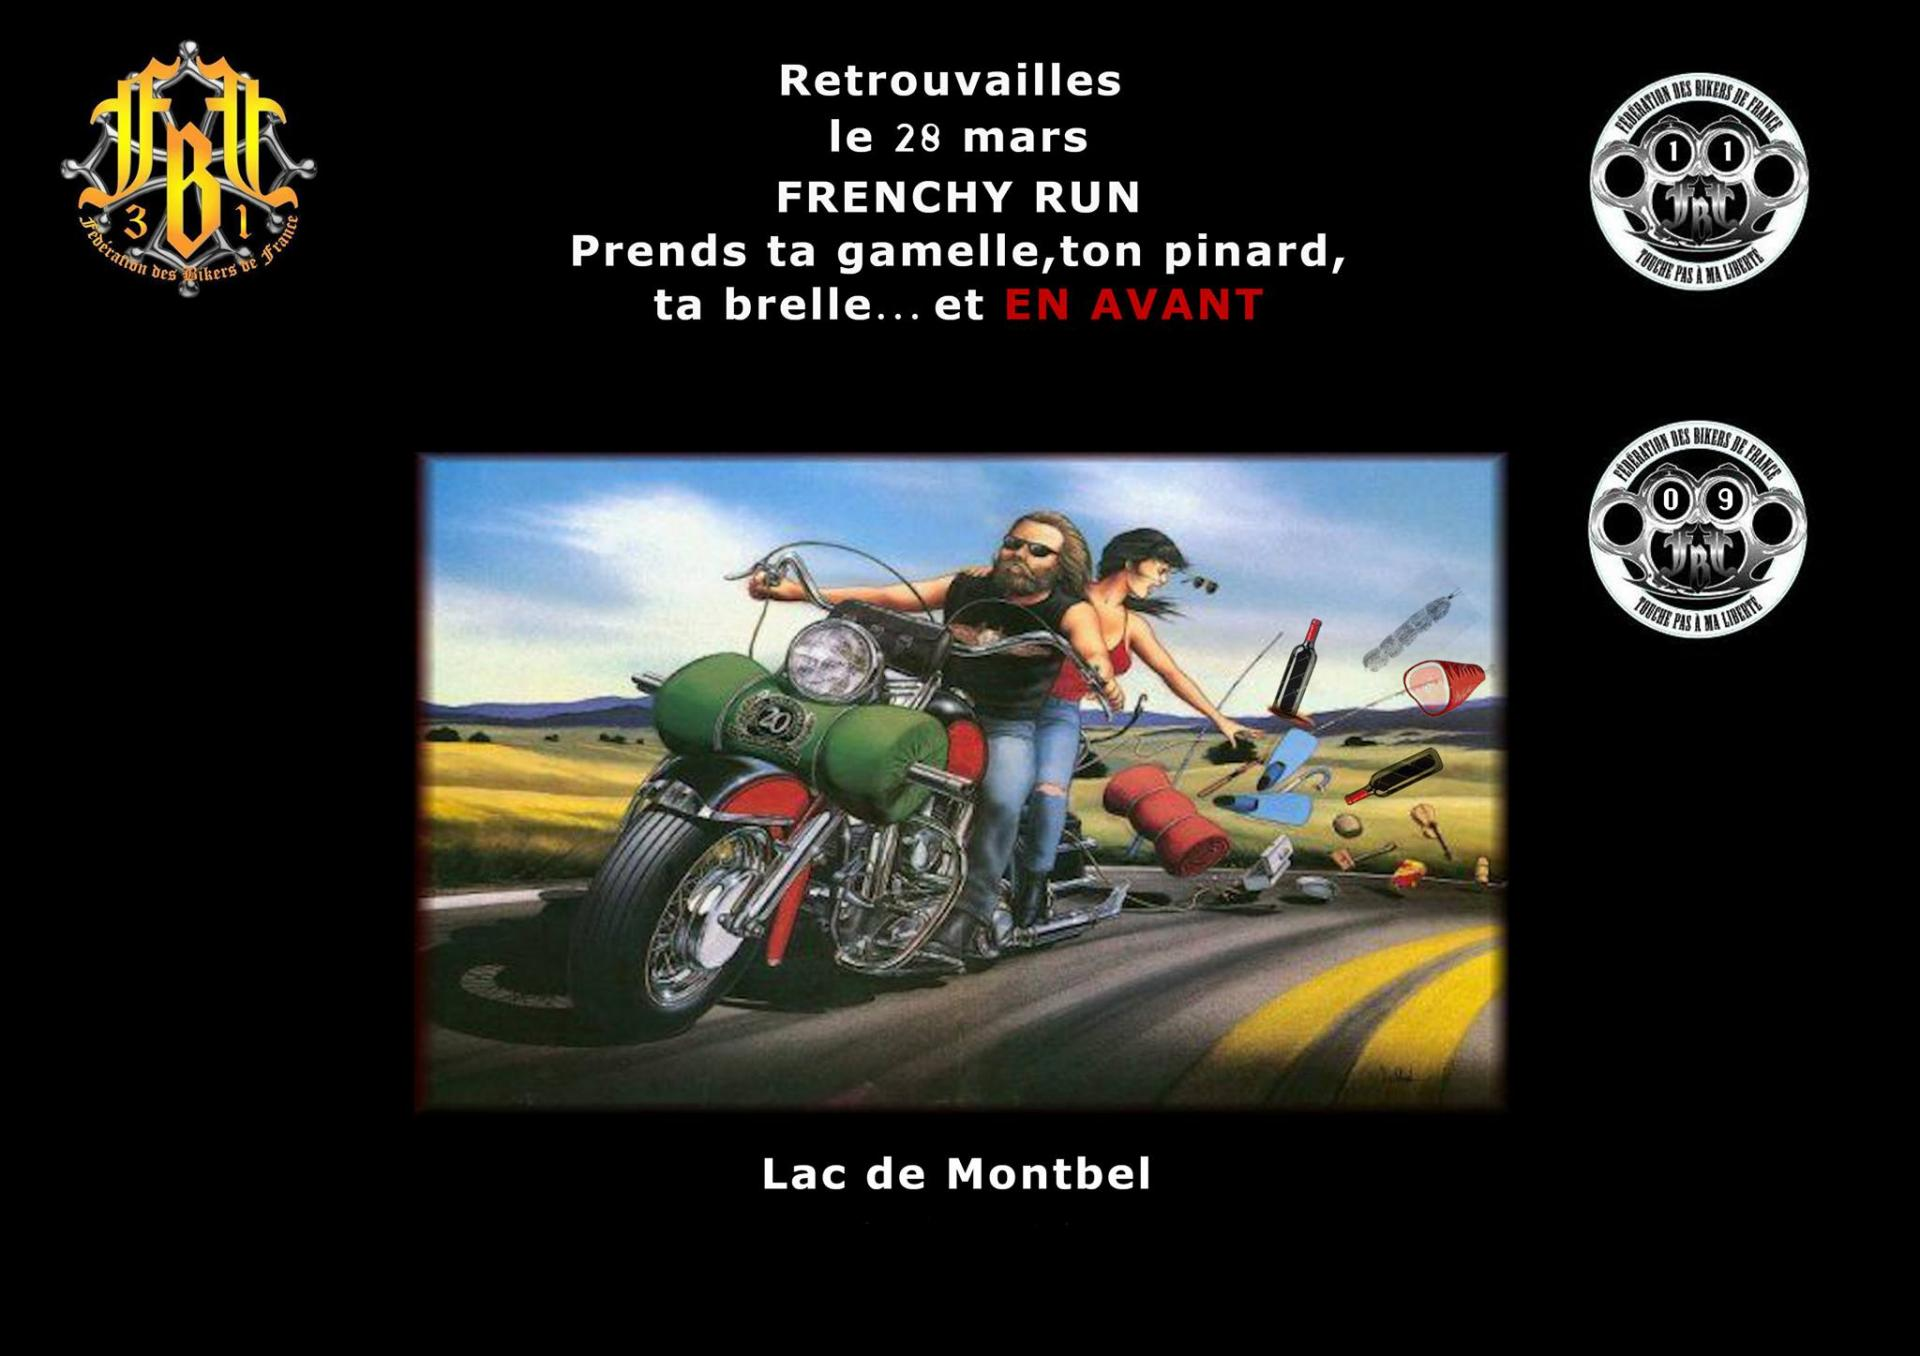 Retrouvaille frenchy run